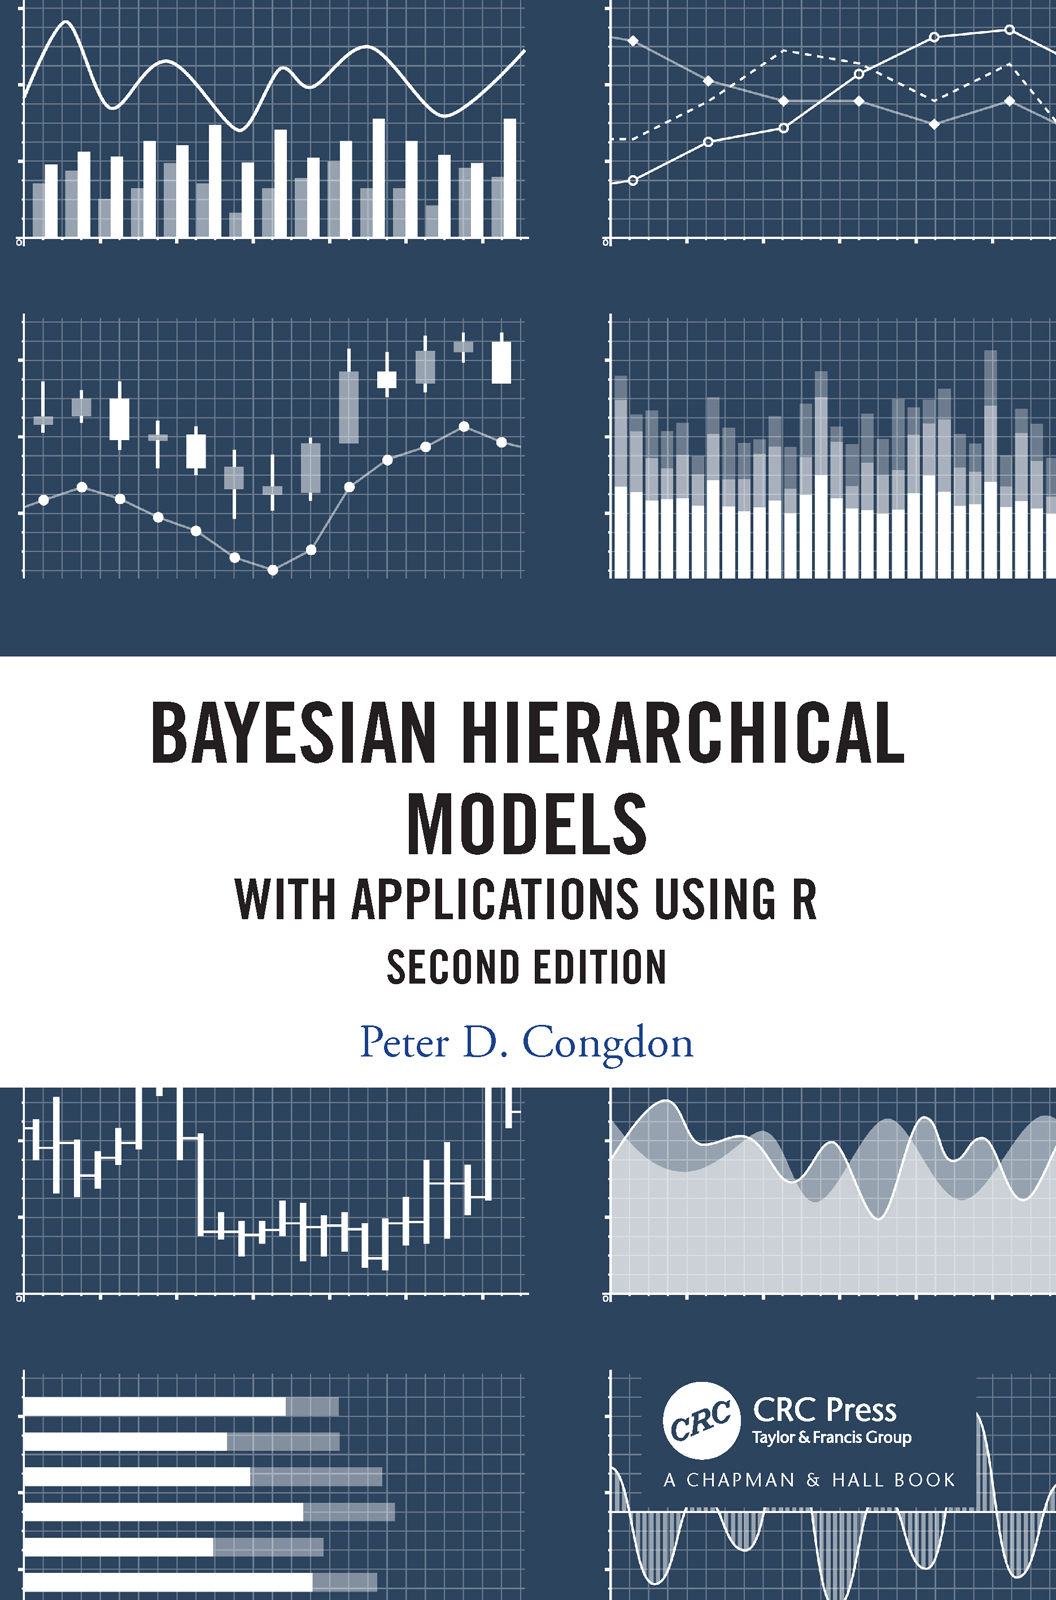 Bayesian Hierarchical Models: With Applications Using R, Second Edition book cover